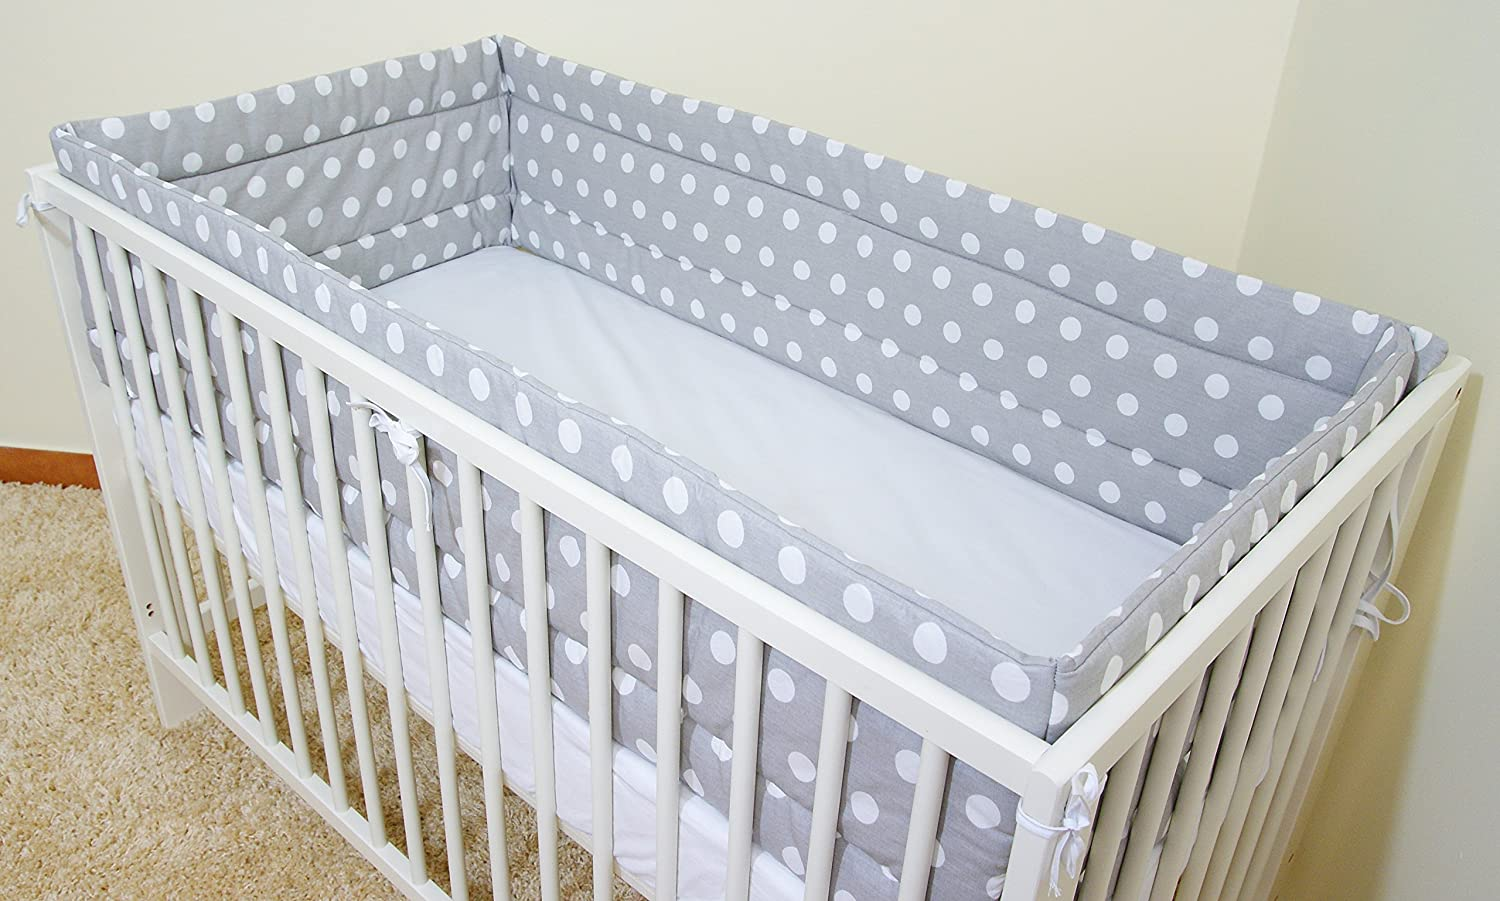 All round// all around Nursery bumper 420cm long// Paded// to  fit Baby cot bed